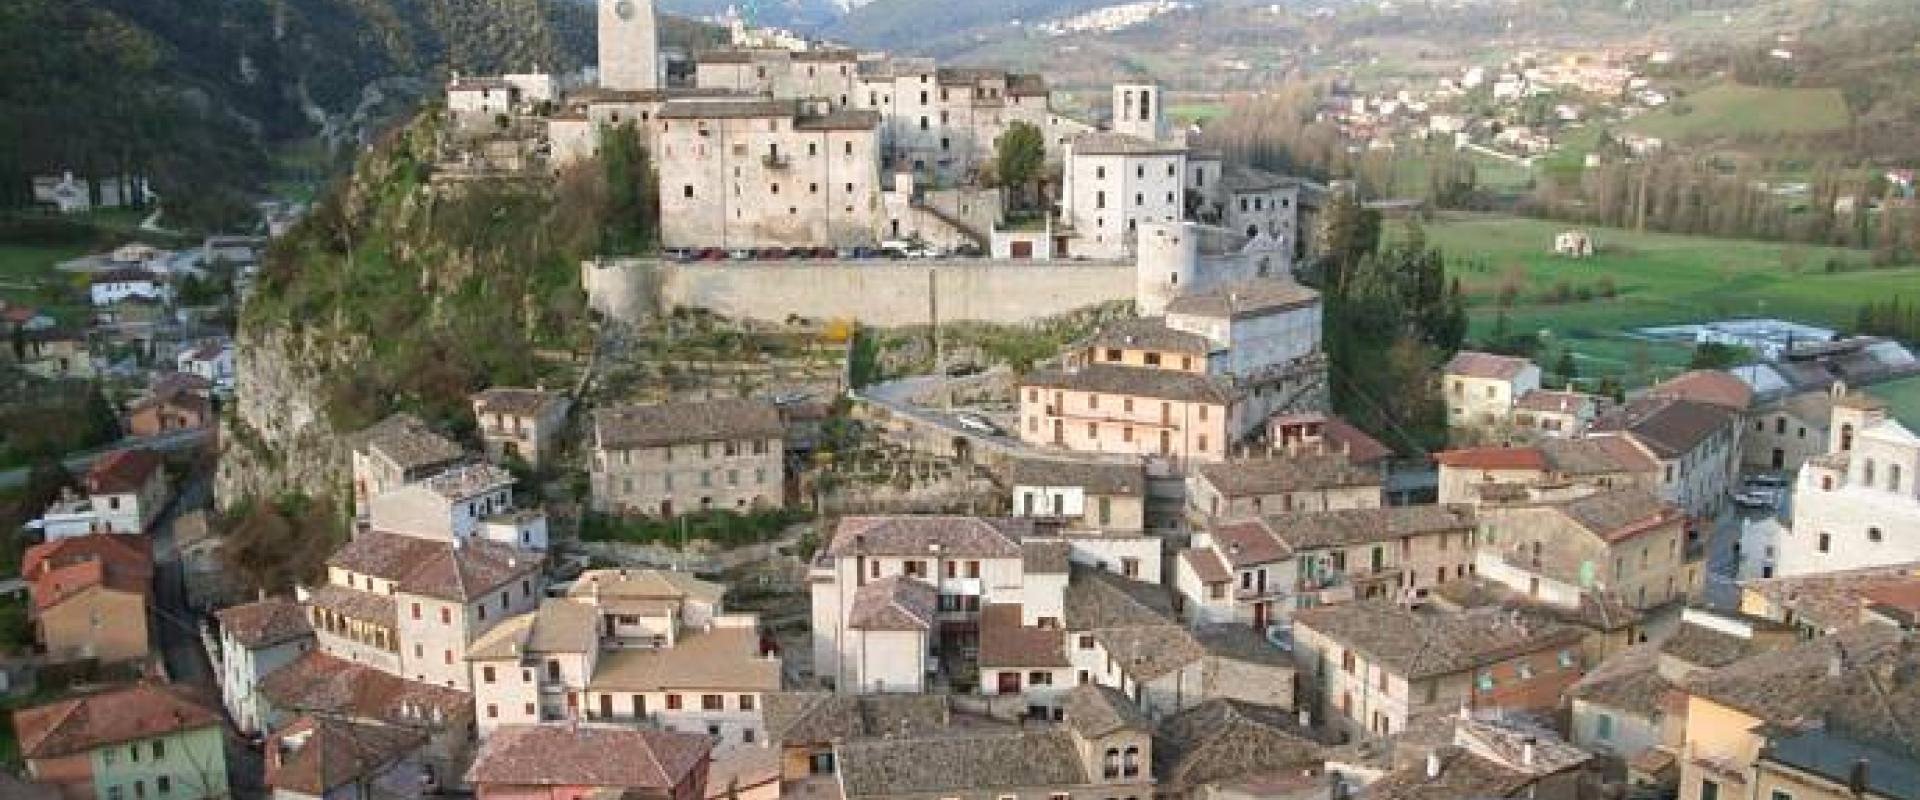 Viist of Arrone Umbria